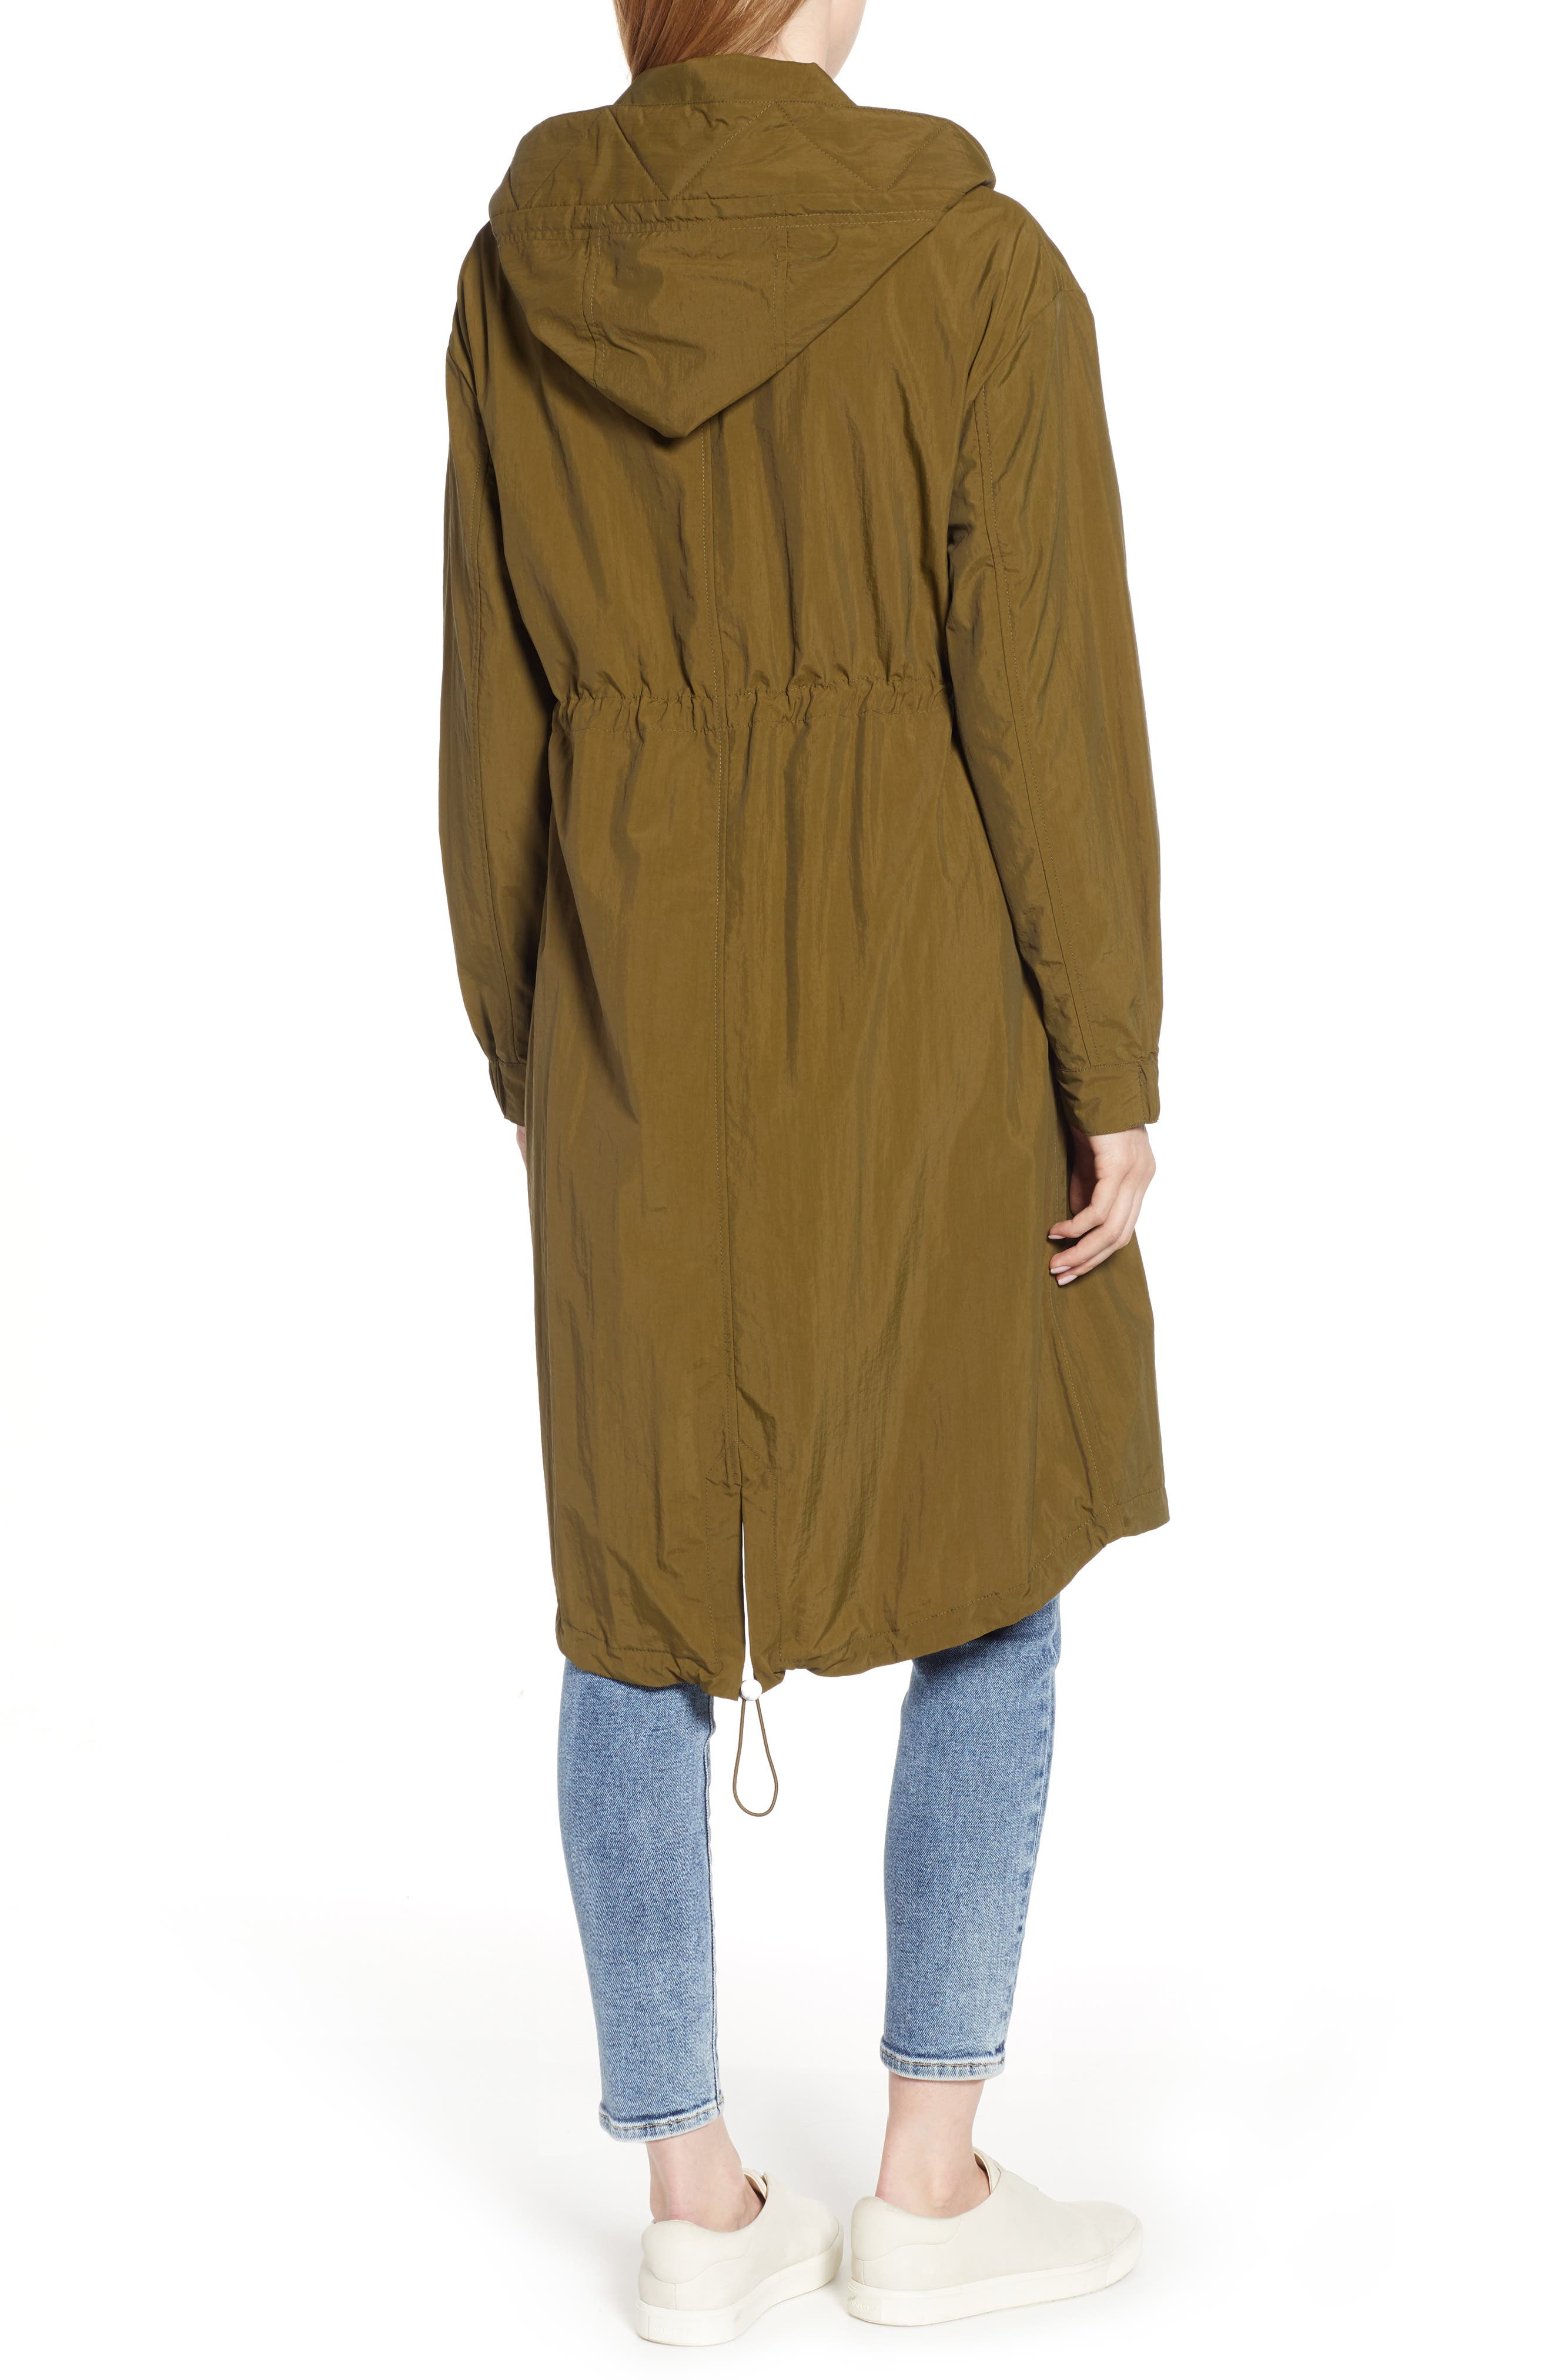 KENNETH COLE NEW YORK, Hooded Parka, Alternate thumbnail 2, color, OLIVE